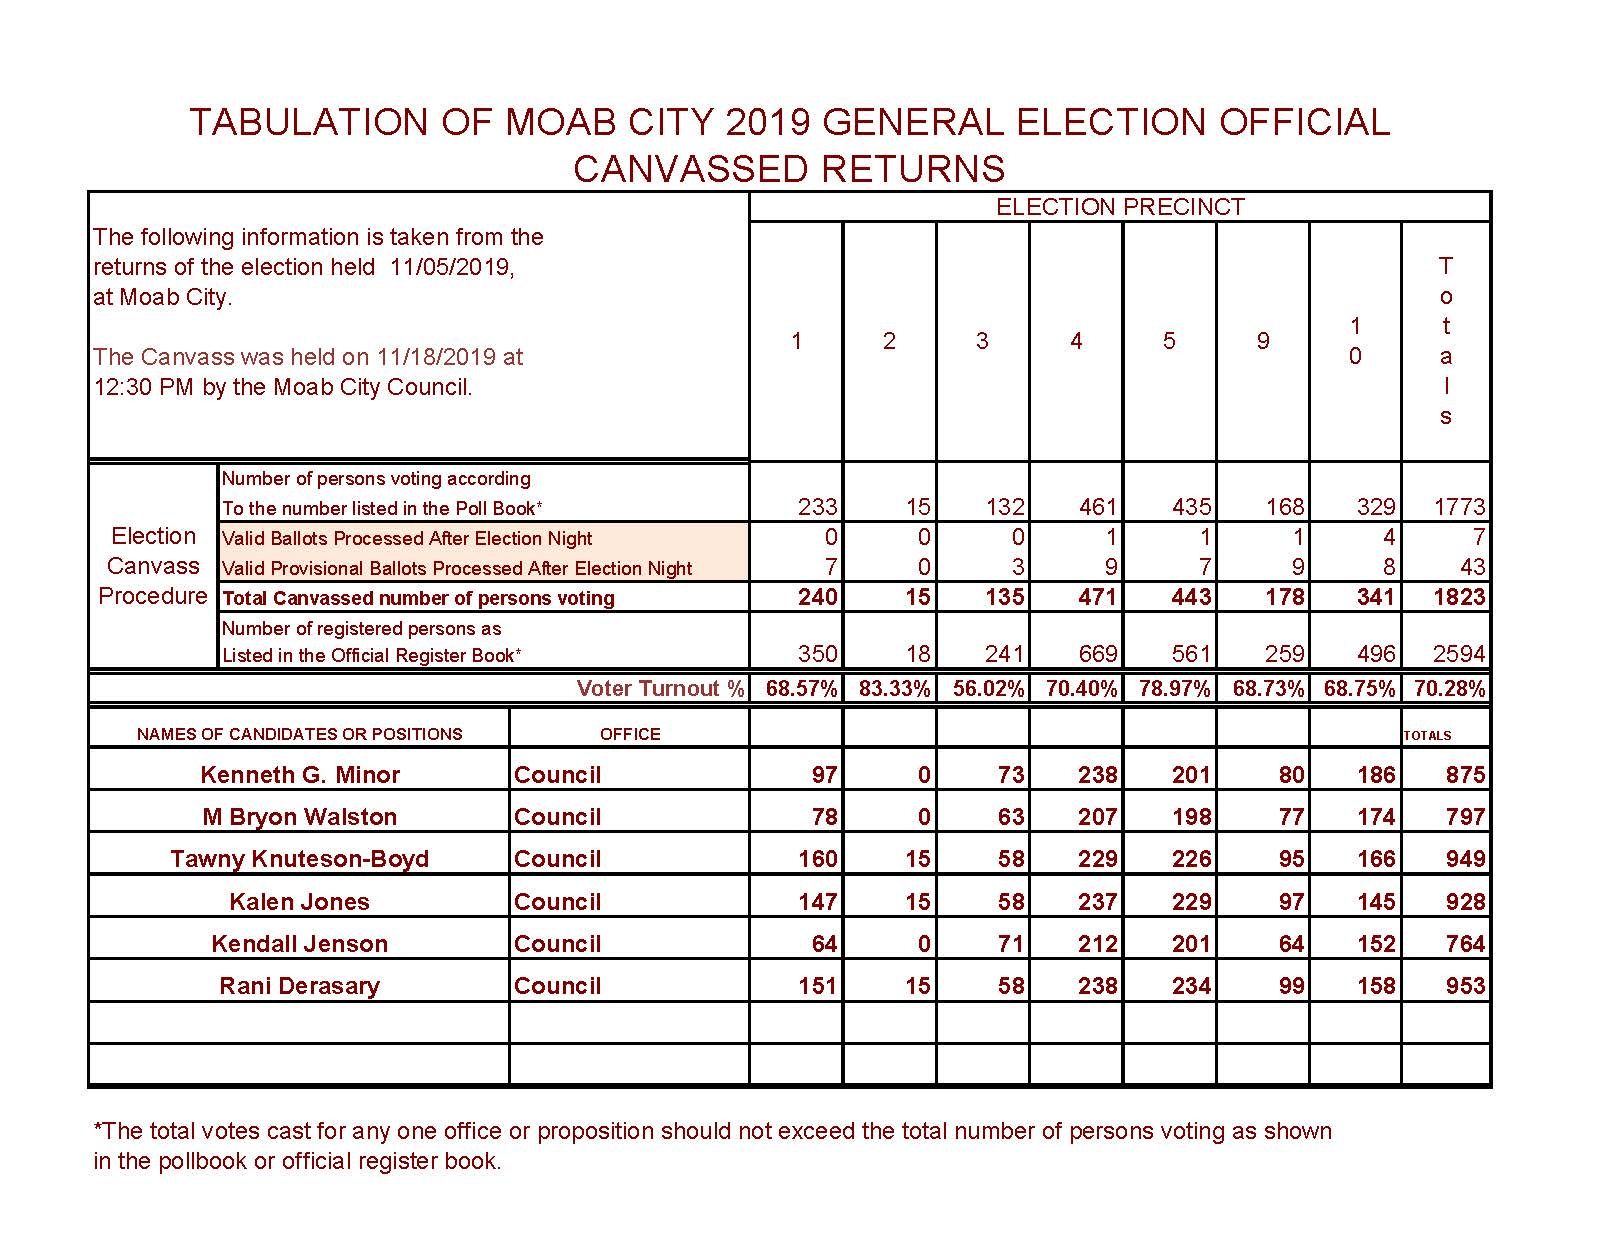 Tabulation of General Election Returns Canvassed